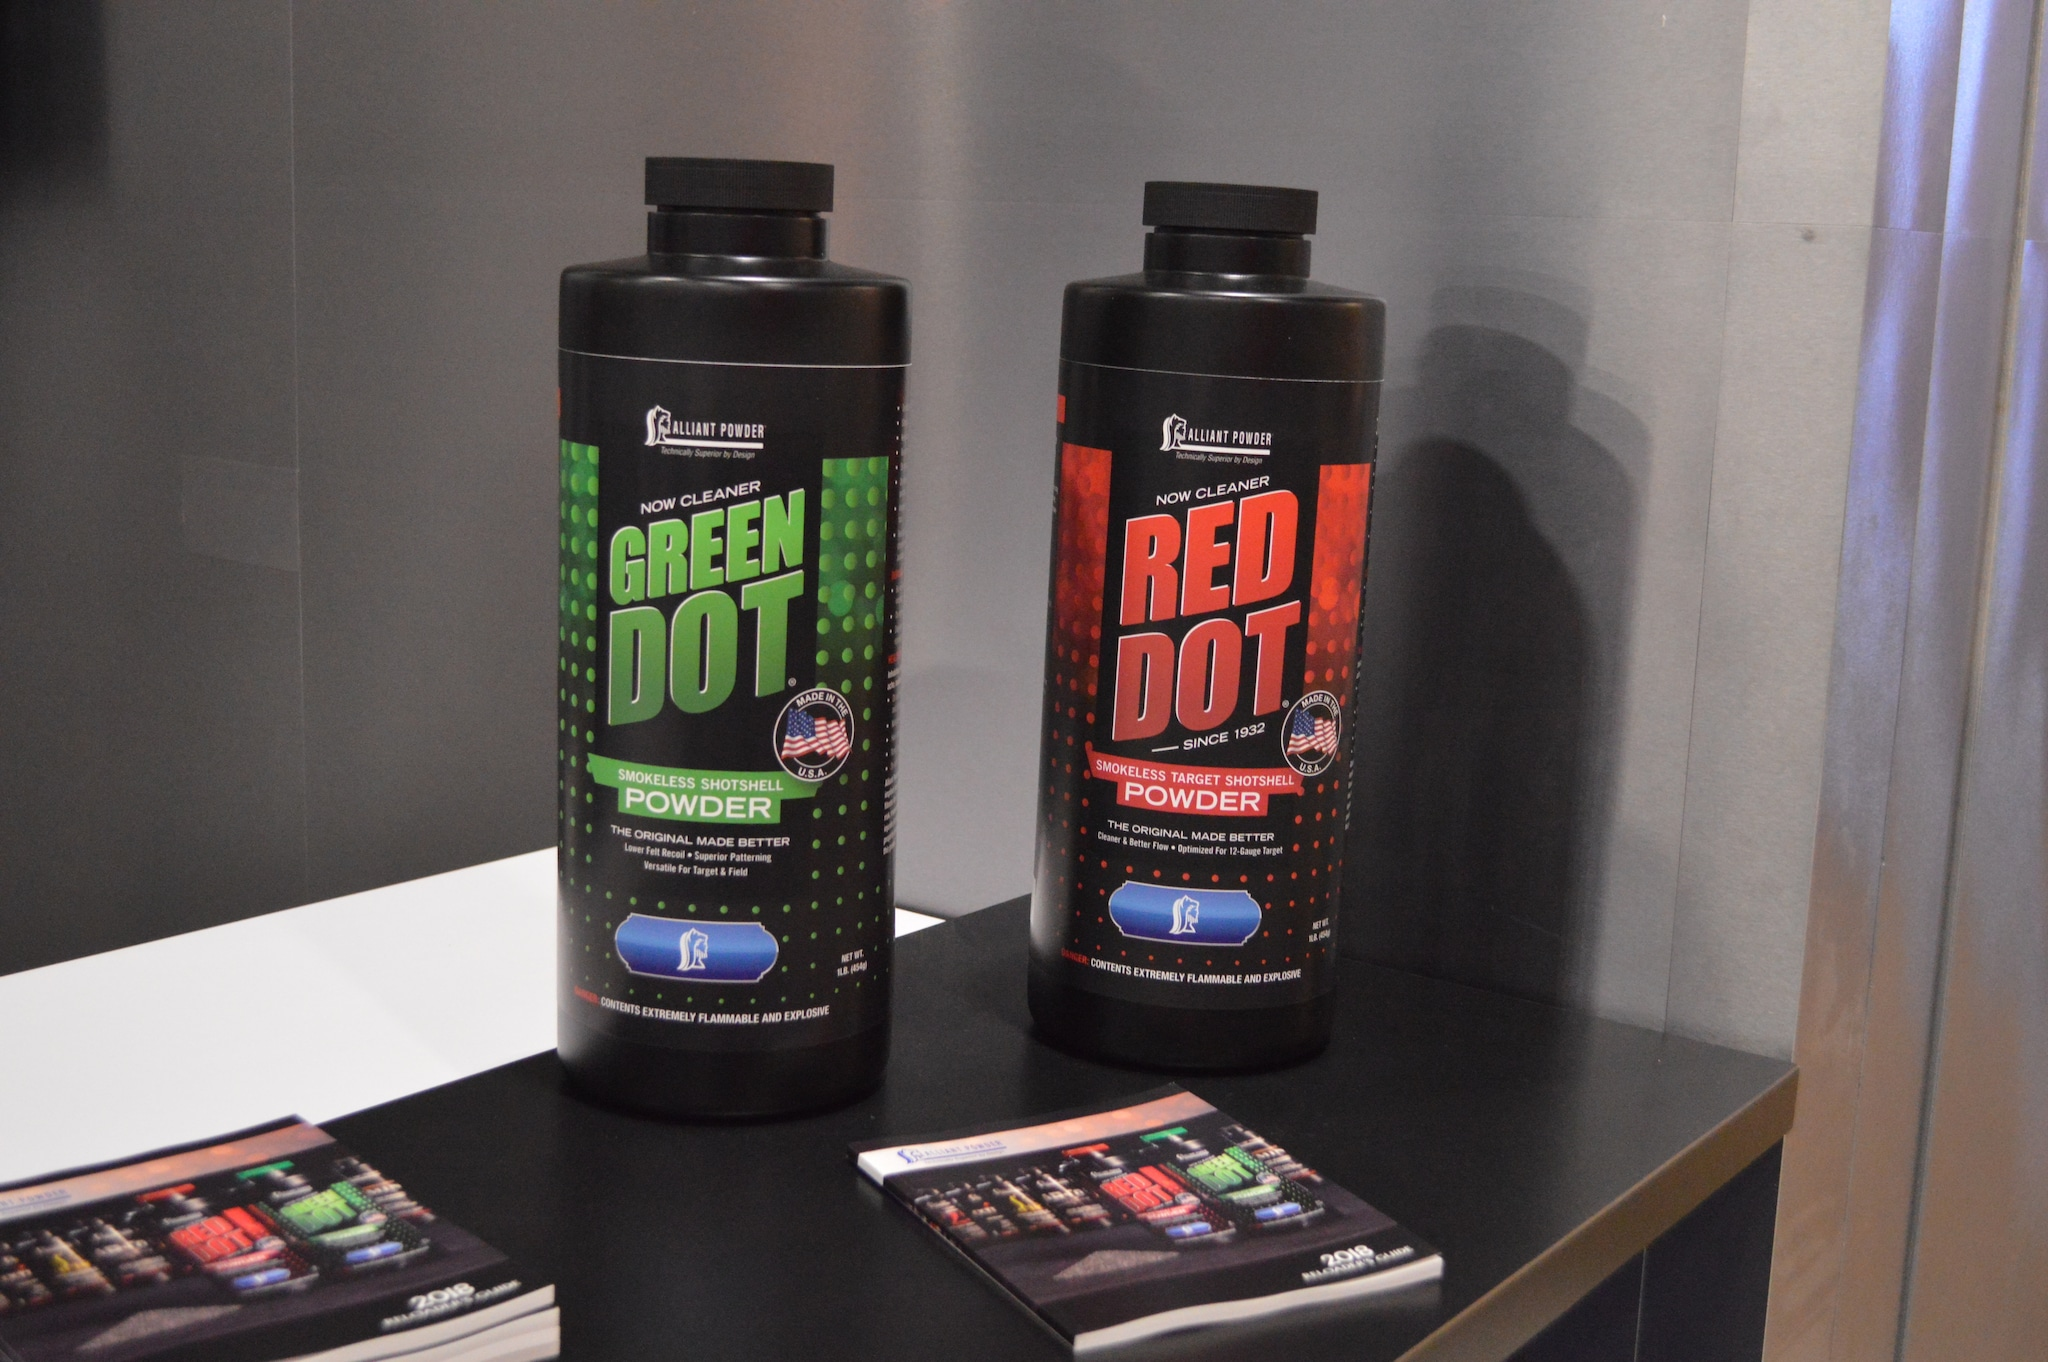 Two of Alliant's most popular powders just got even better. The new and improved Green Dot and Red Dot are now formulated to burn much cleaner. Best of all, load data remains the same. (Photo: Kristin Alberts/Guns.com)